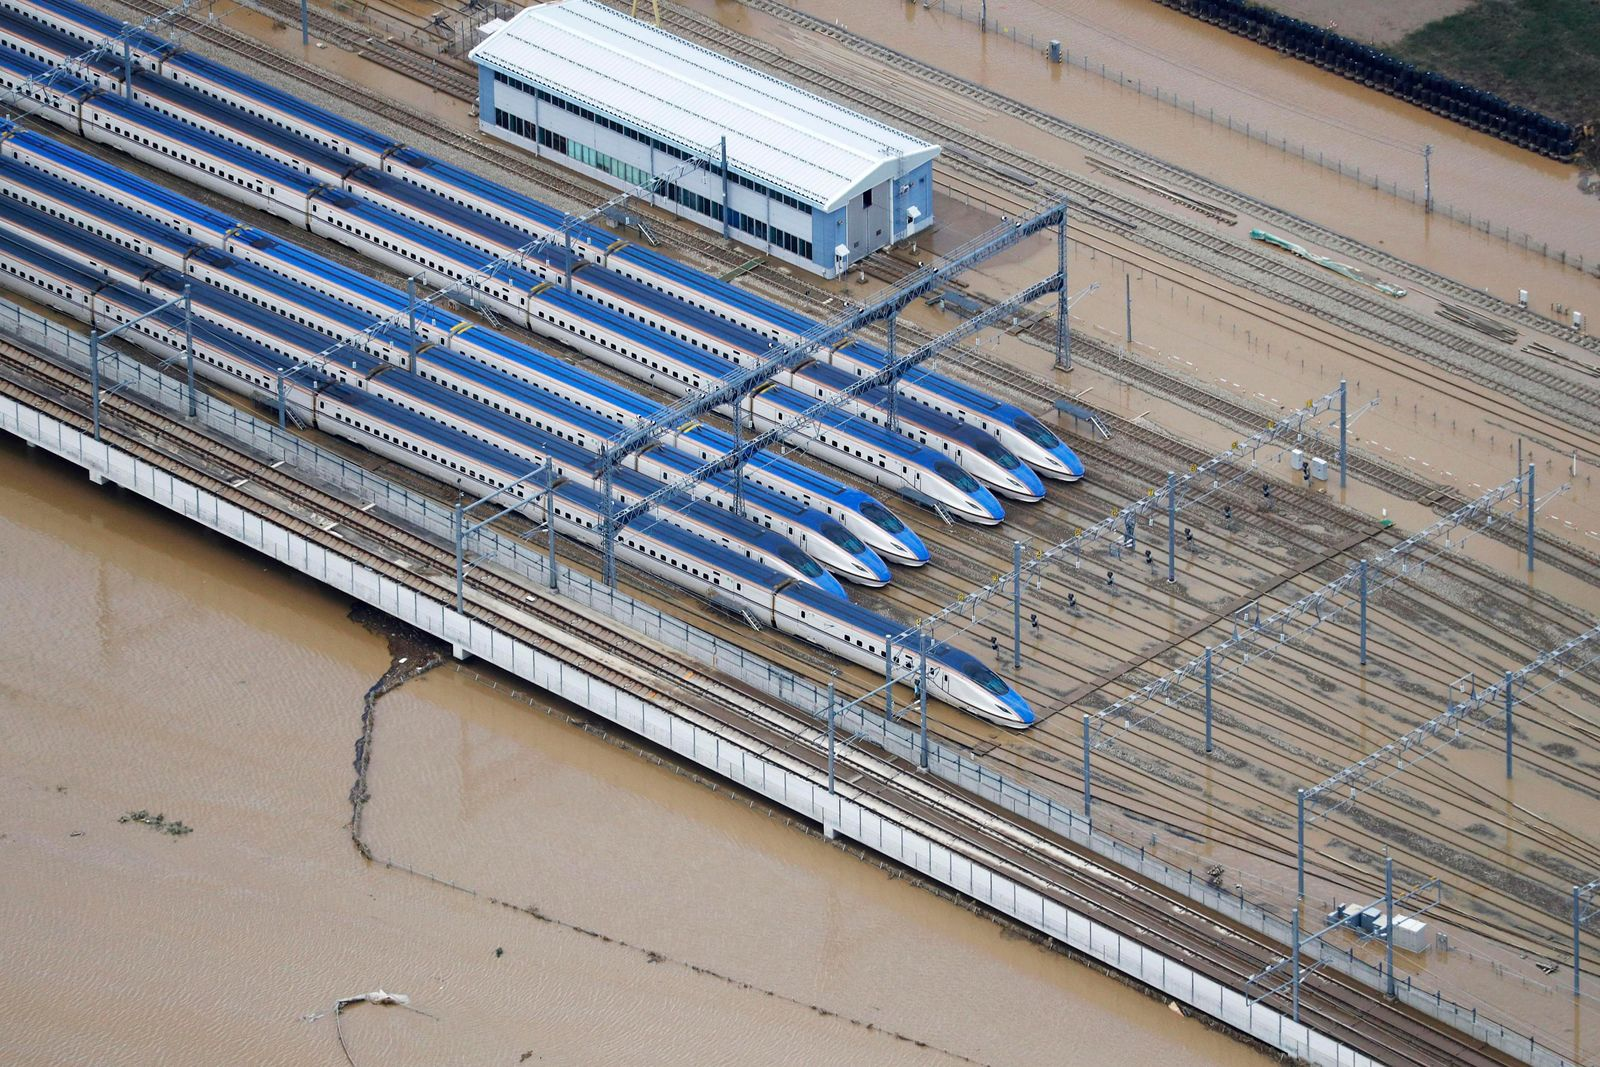 Bullet trains sit at their base as the surrounding land is still flooded following Typhoon Hagibis, in Nagano, central Japan Monday, Oct. 14, 2019. Rescue crews in Japan dug through mudslides and searched near swollen rivers Monday as they looked for those missing from the typhoon that  caused serious damage in central and northern Japan. (Kyodo News via AP)